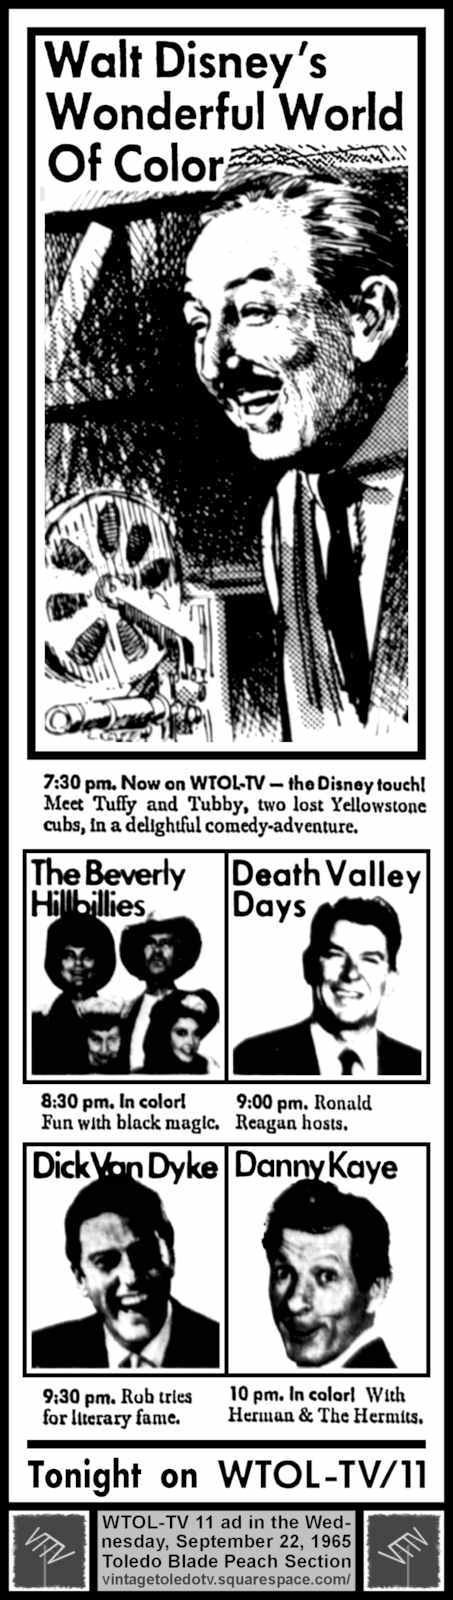 Vintage Toledo Tv Wtol Tv 11 Print Ads Wednesday Night Shows 9 22 65 Walt Disney S Wonderful World Of Color The Yell 1960s Tv Shows Print Ads Disney Fun